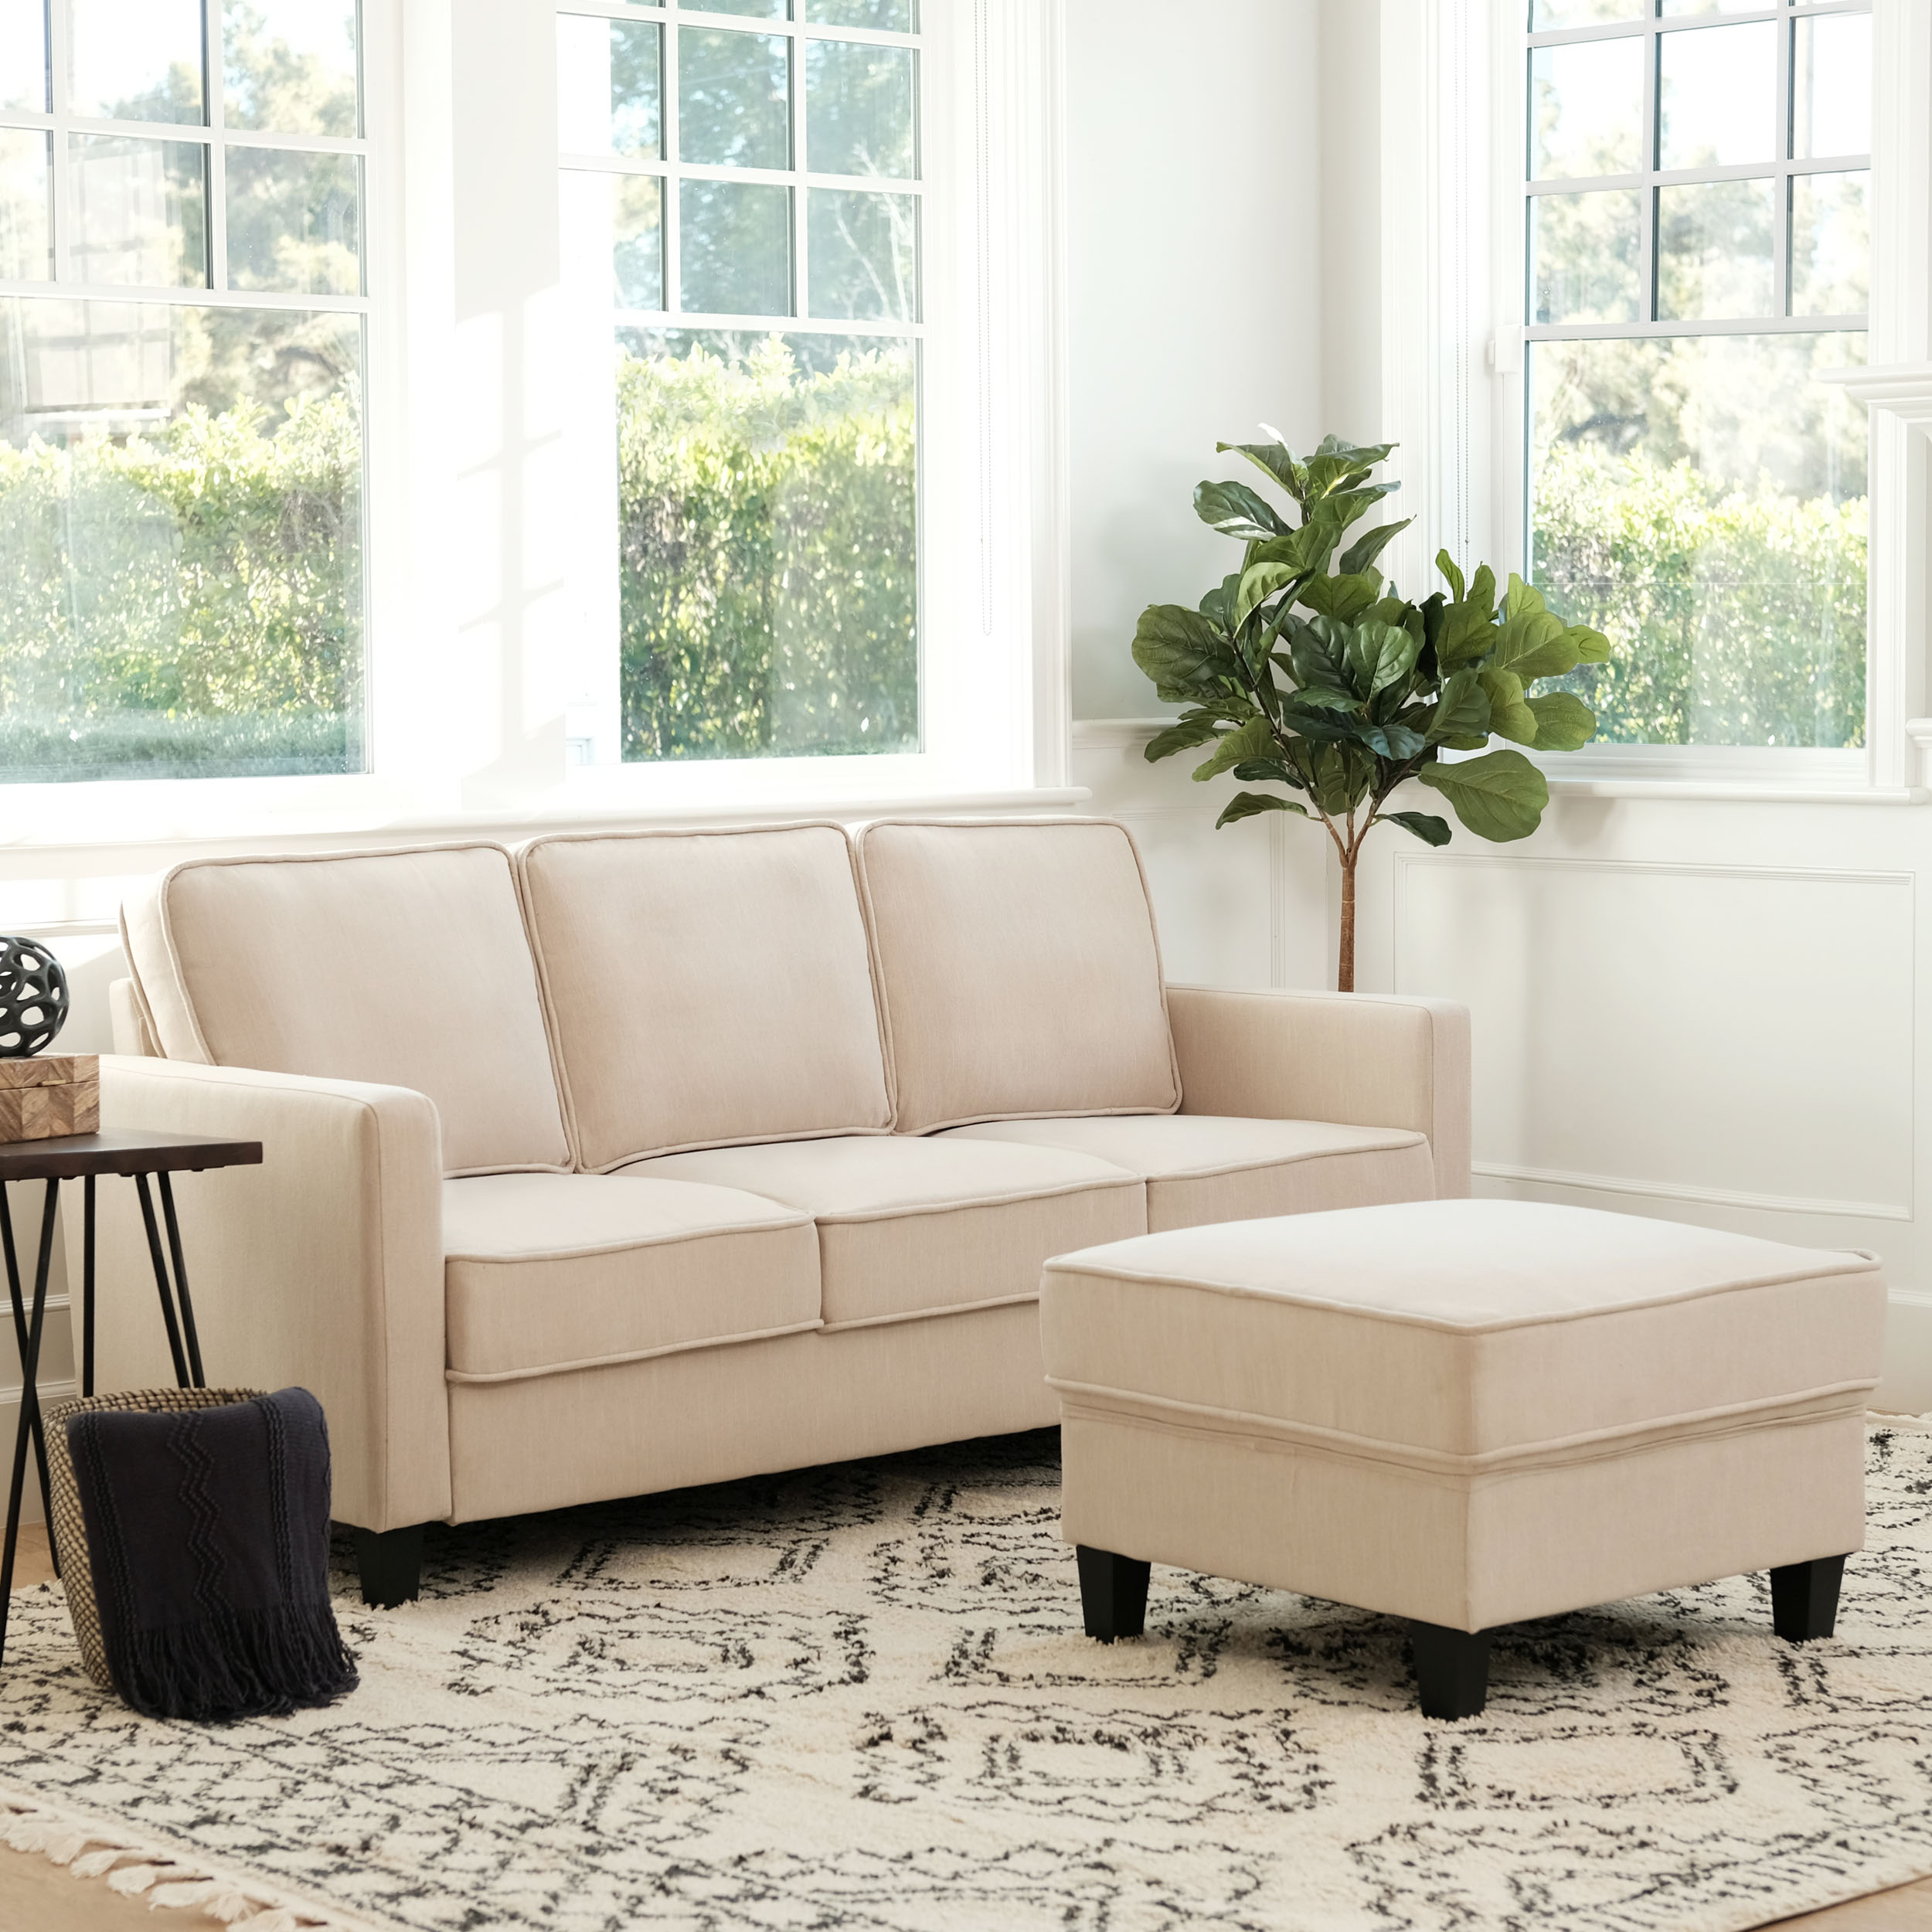 Princeton Fabric Sofa and Ottoman Set